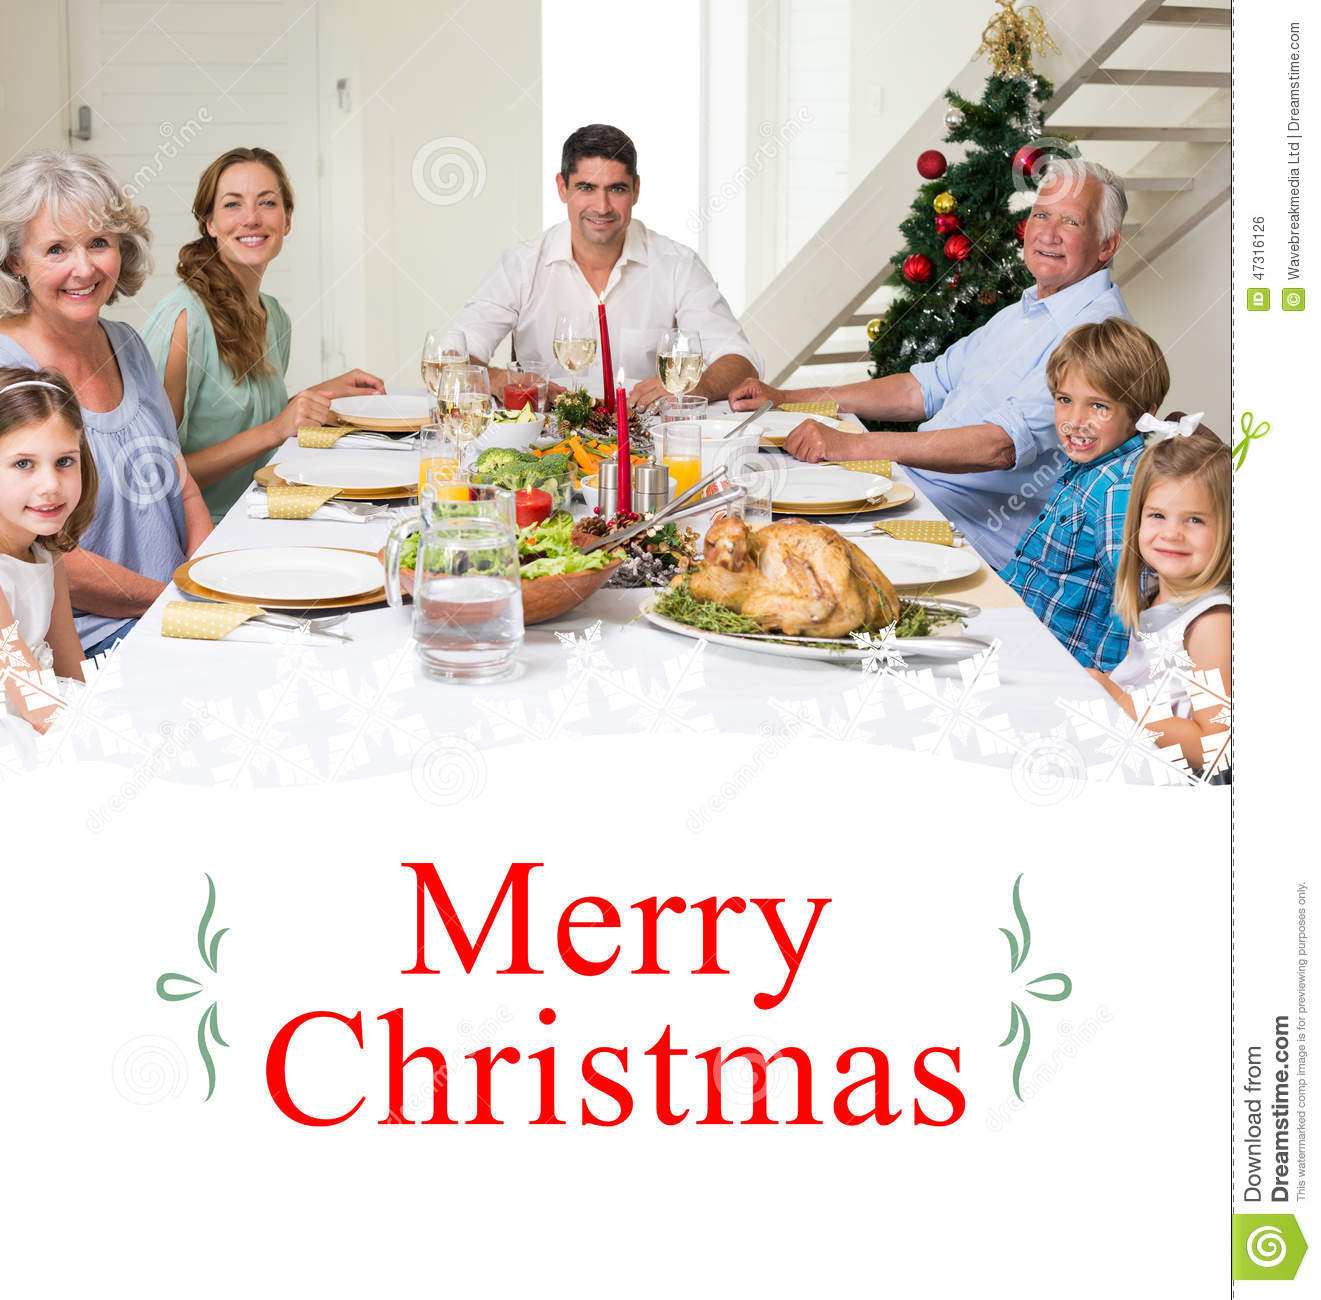 Composite image of family having christmas meal together